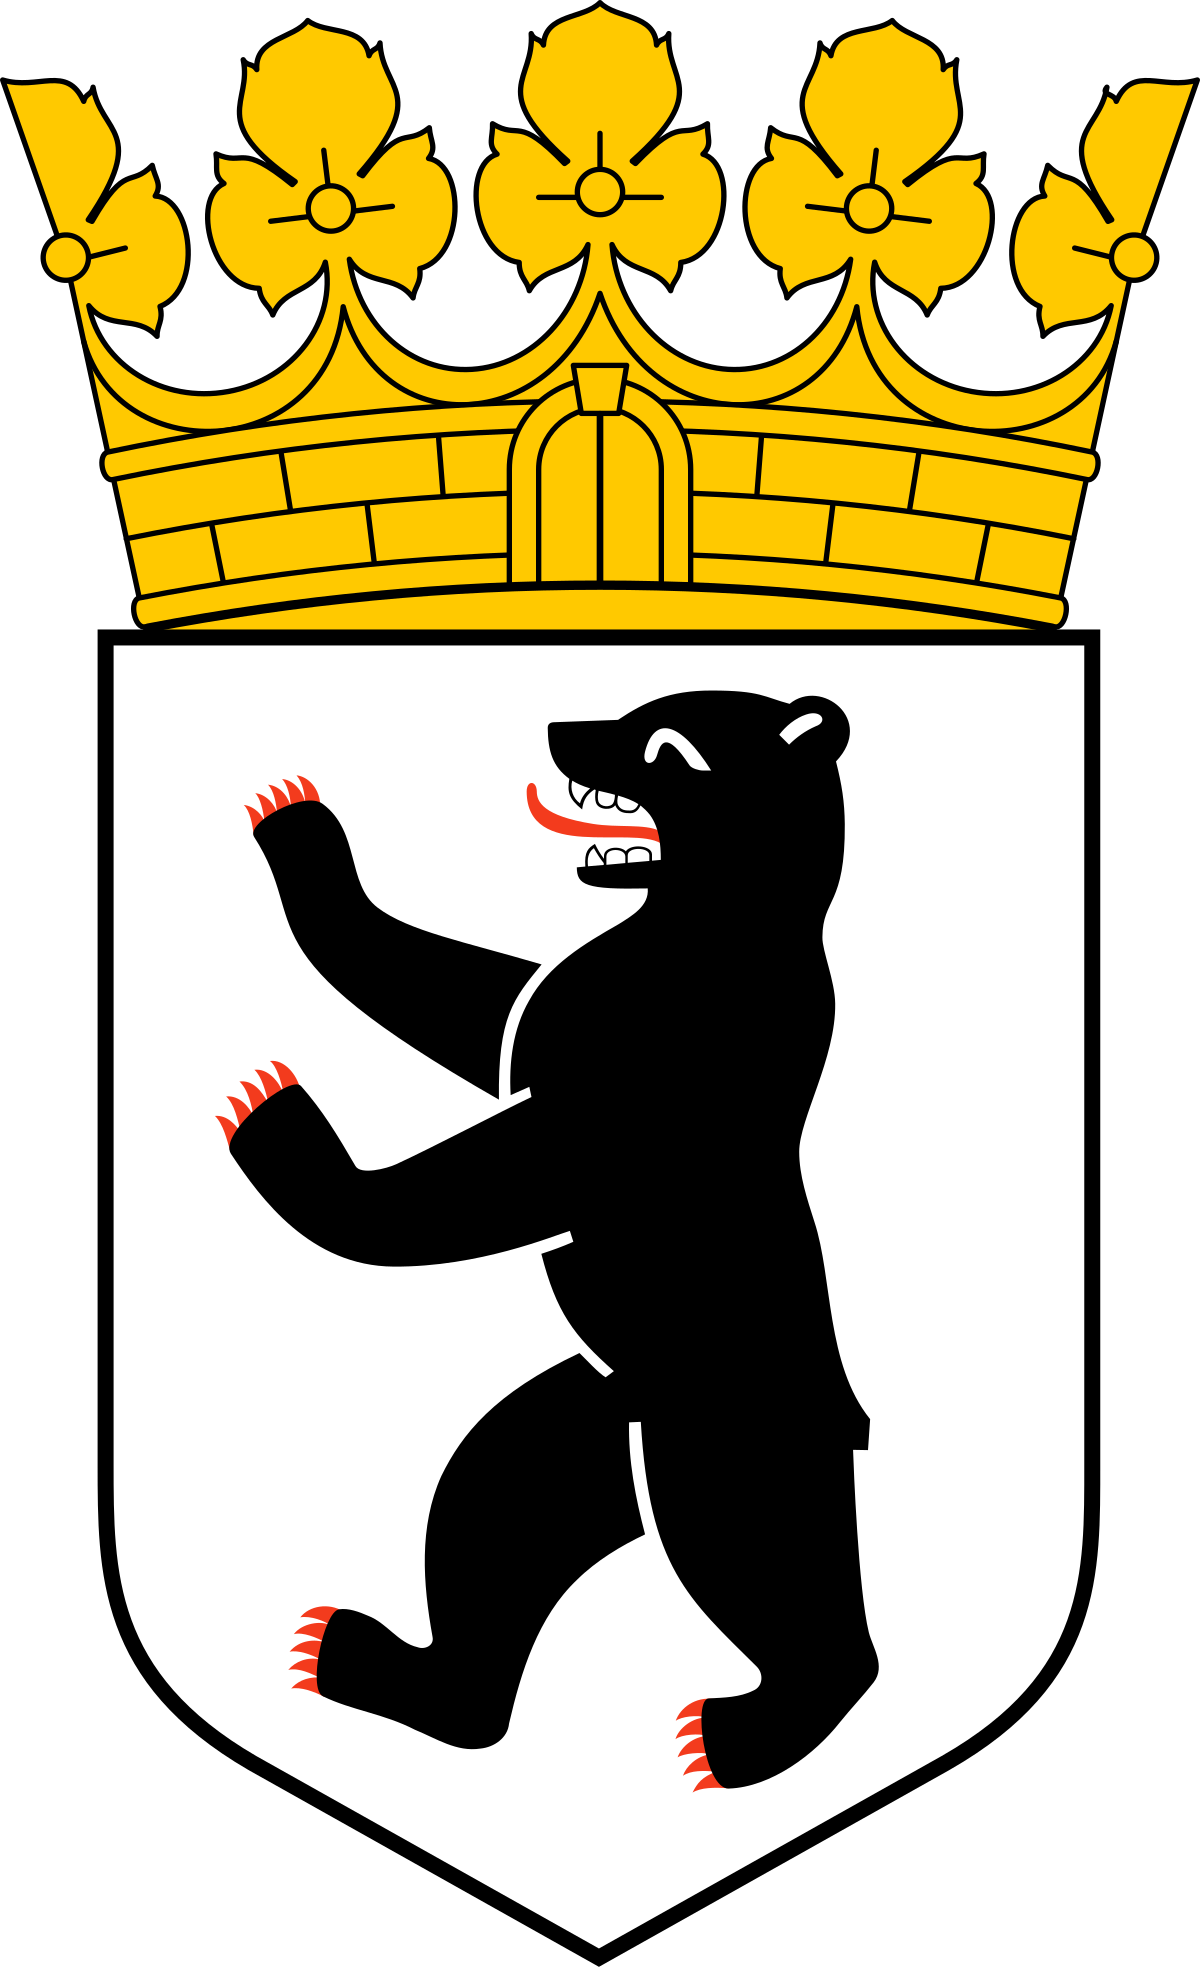 Coat of arms of germany clipart clipart library download Coat of arms of Berlin - Wikipedia clipart library download